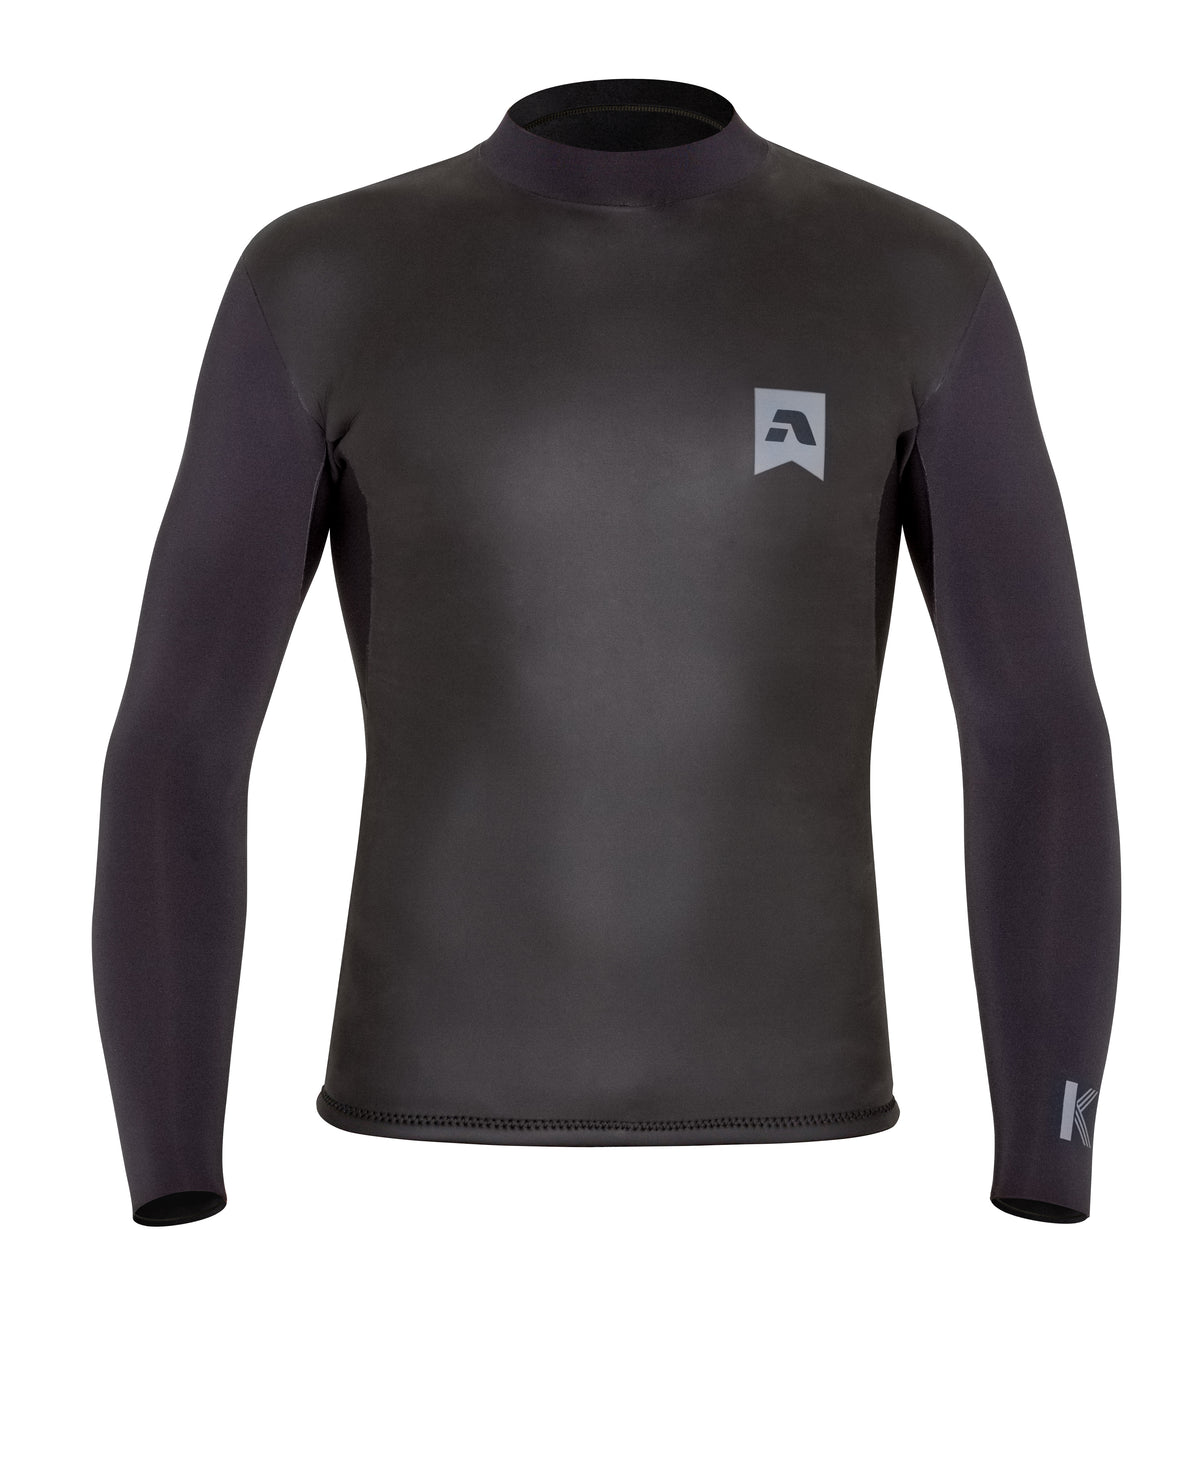 ADELIO K SERIES 2/2 LONG SLEEVE